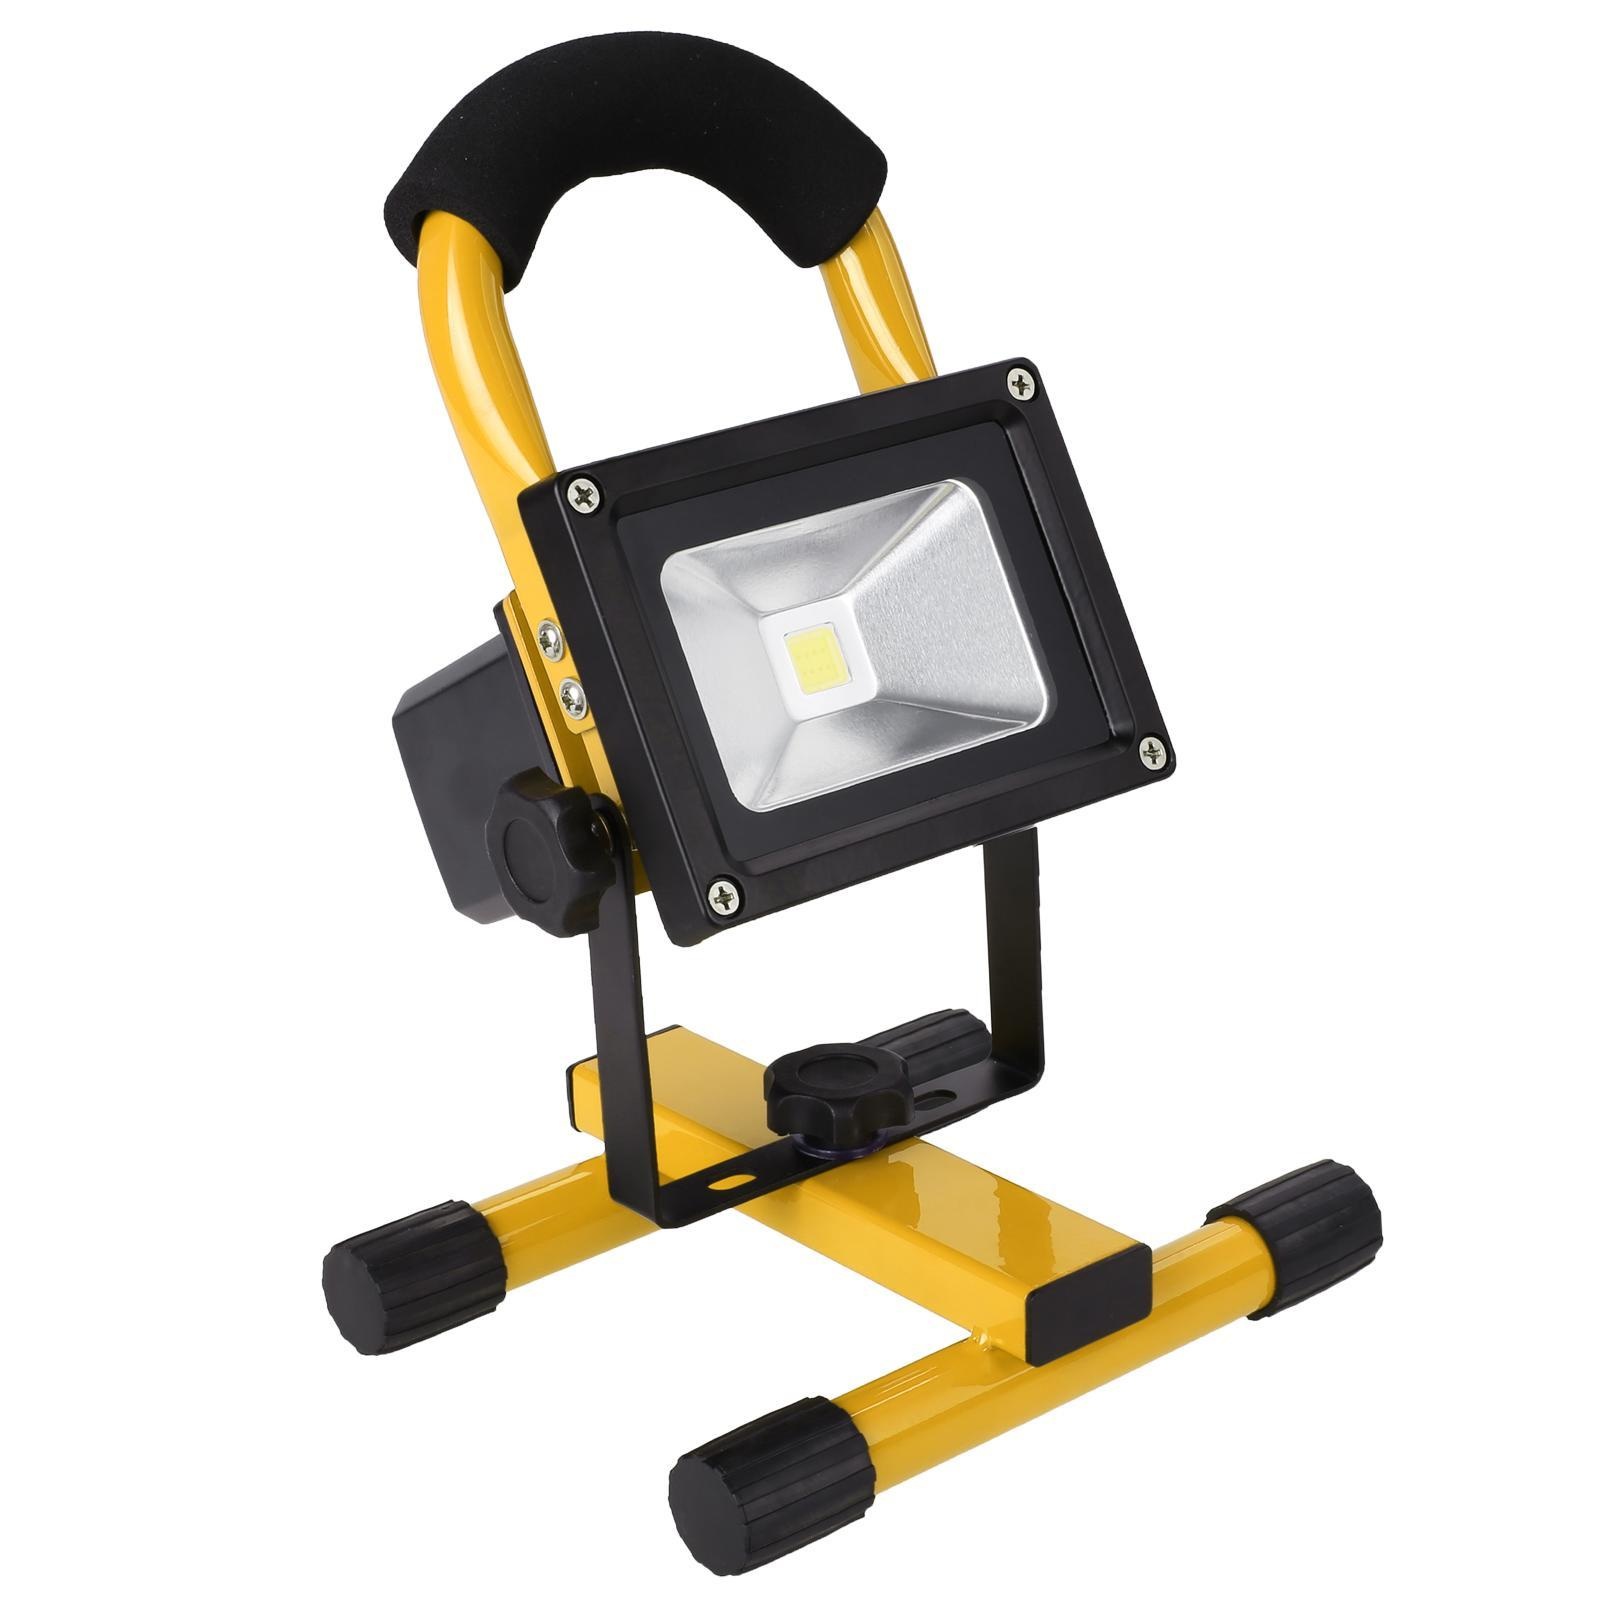 10W Wireless Rechargeable LED Flood Light, Outdoor Camping Hiking Lamp US Plug CDICT